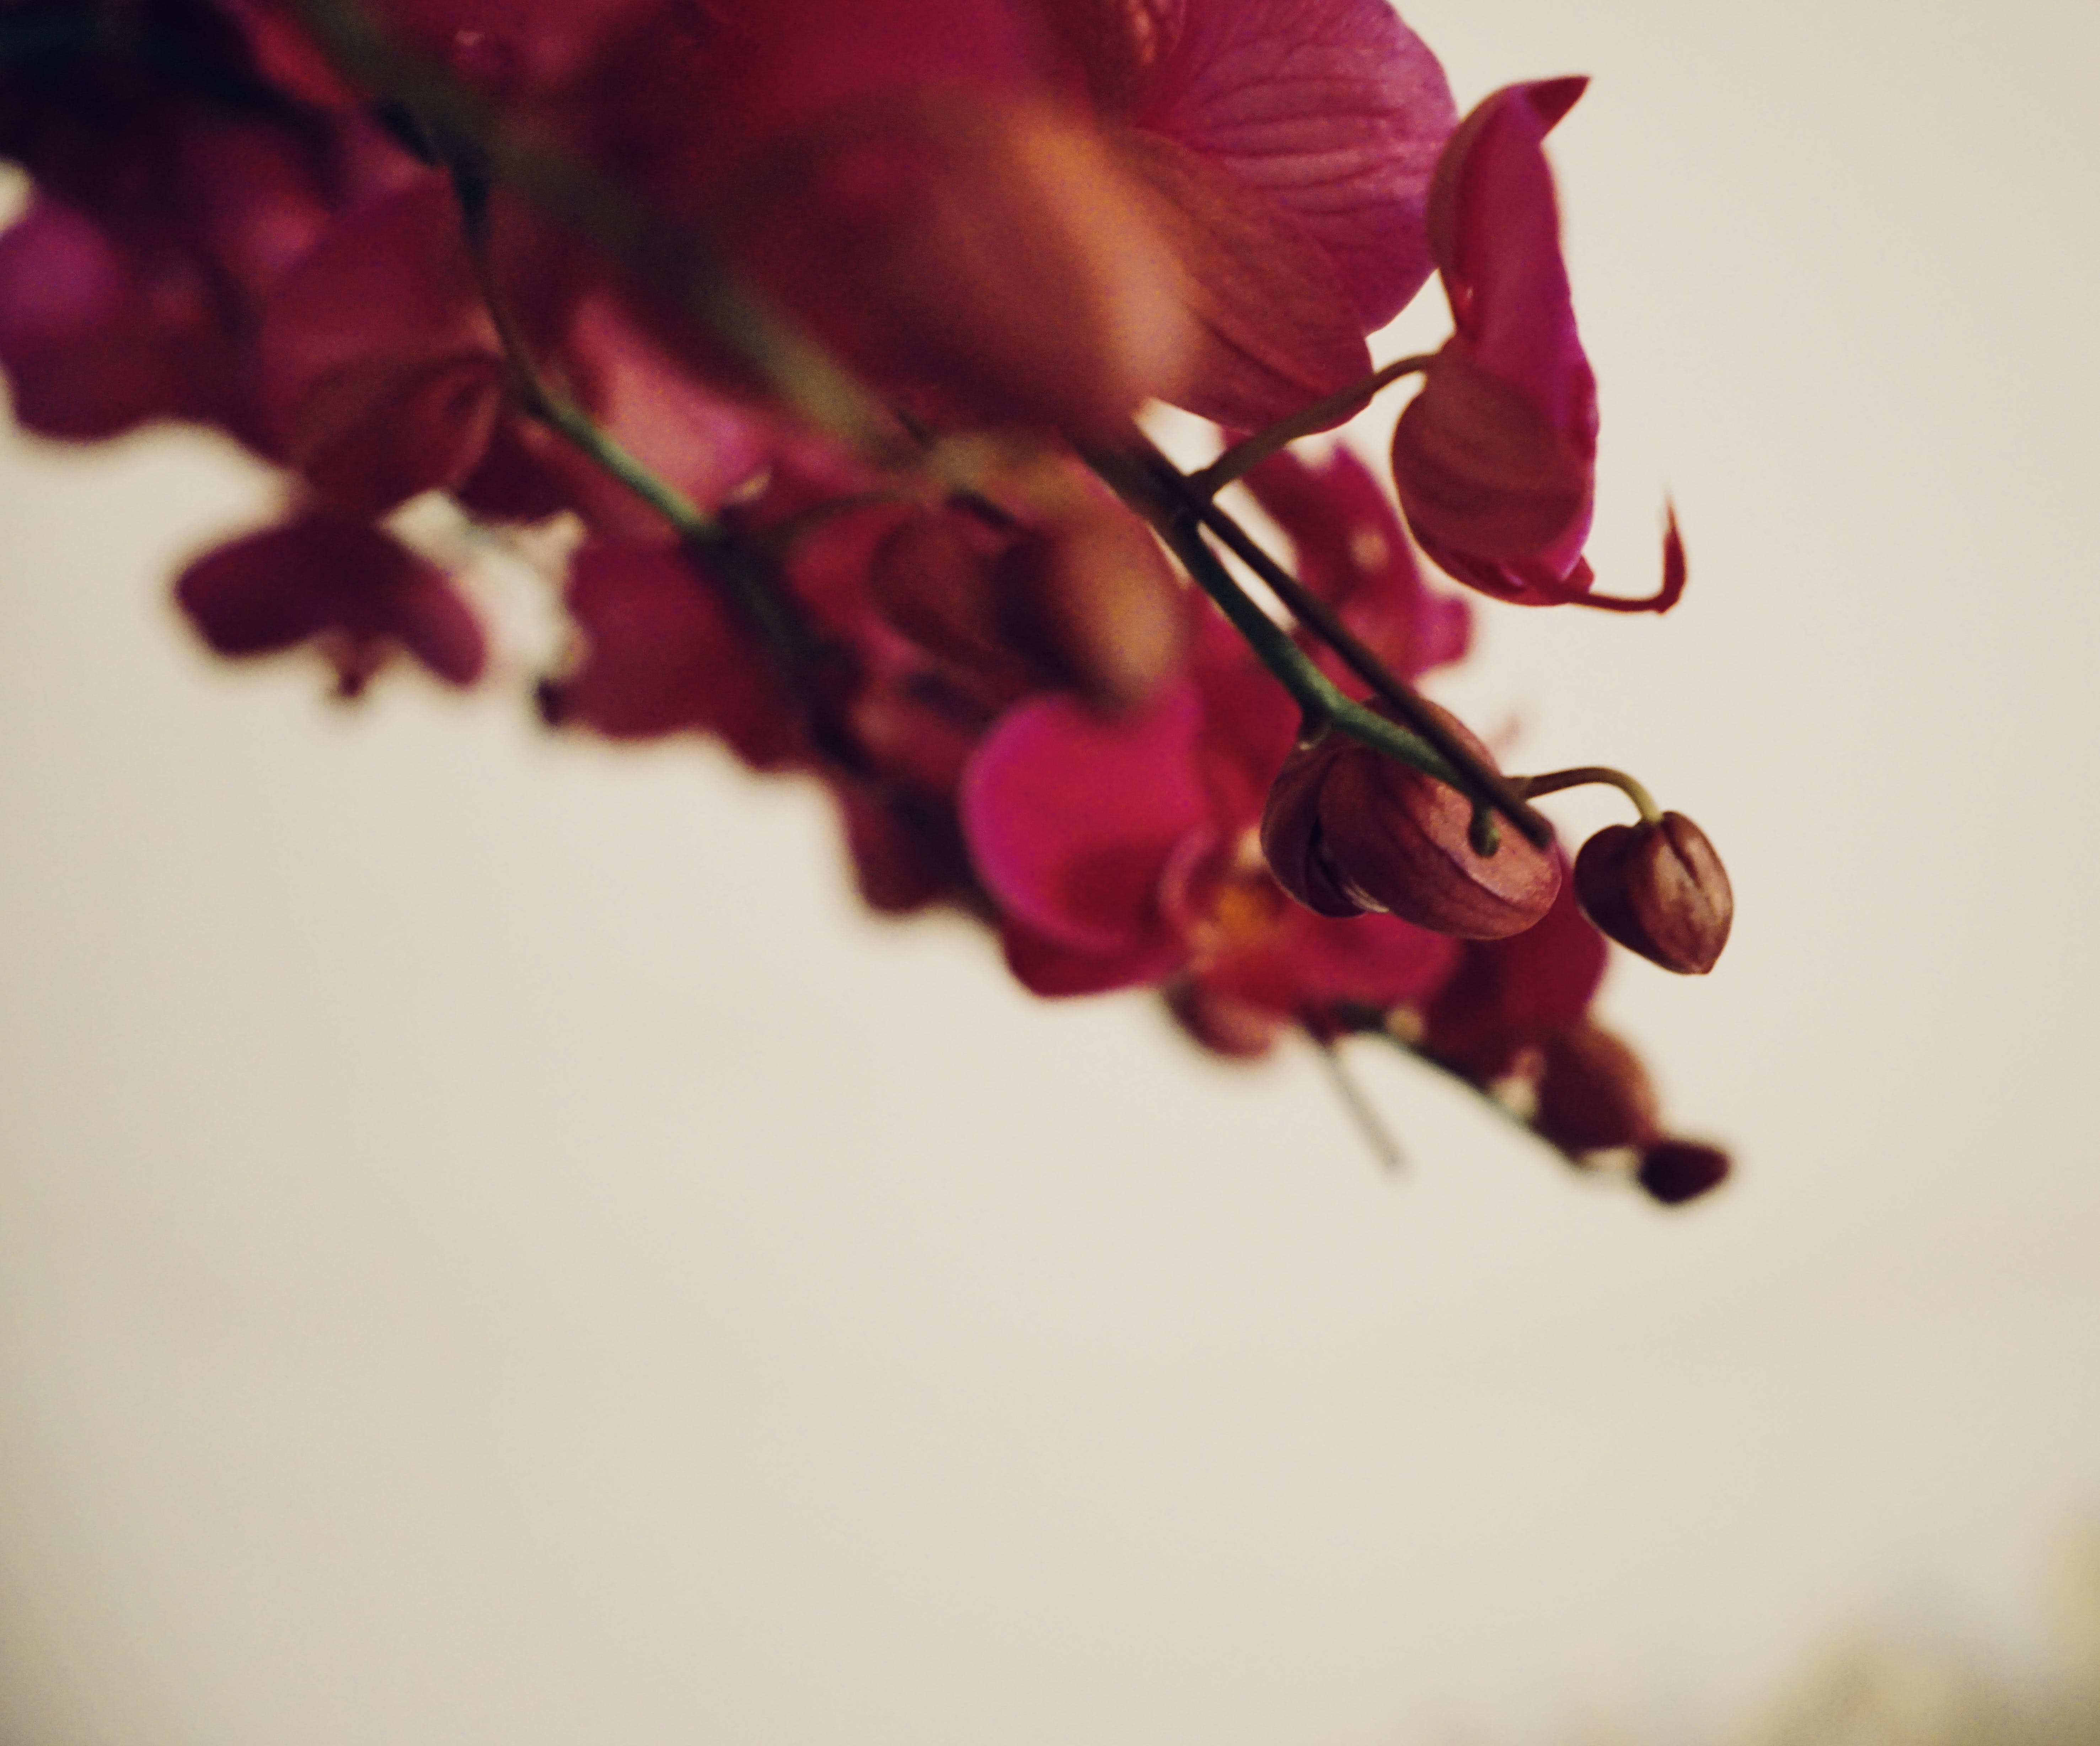 Free stock photo of flower bouquet, red